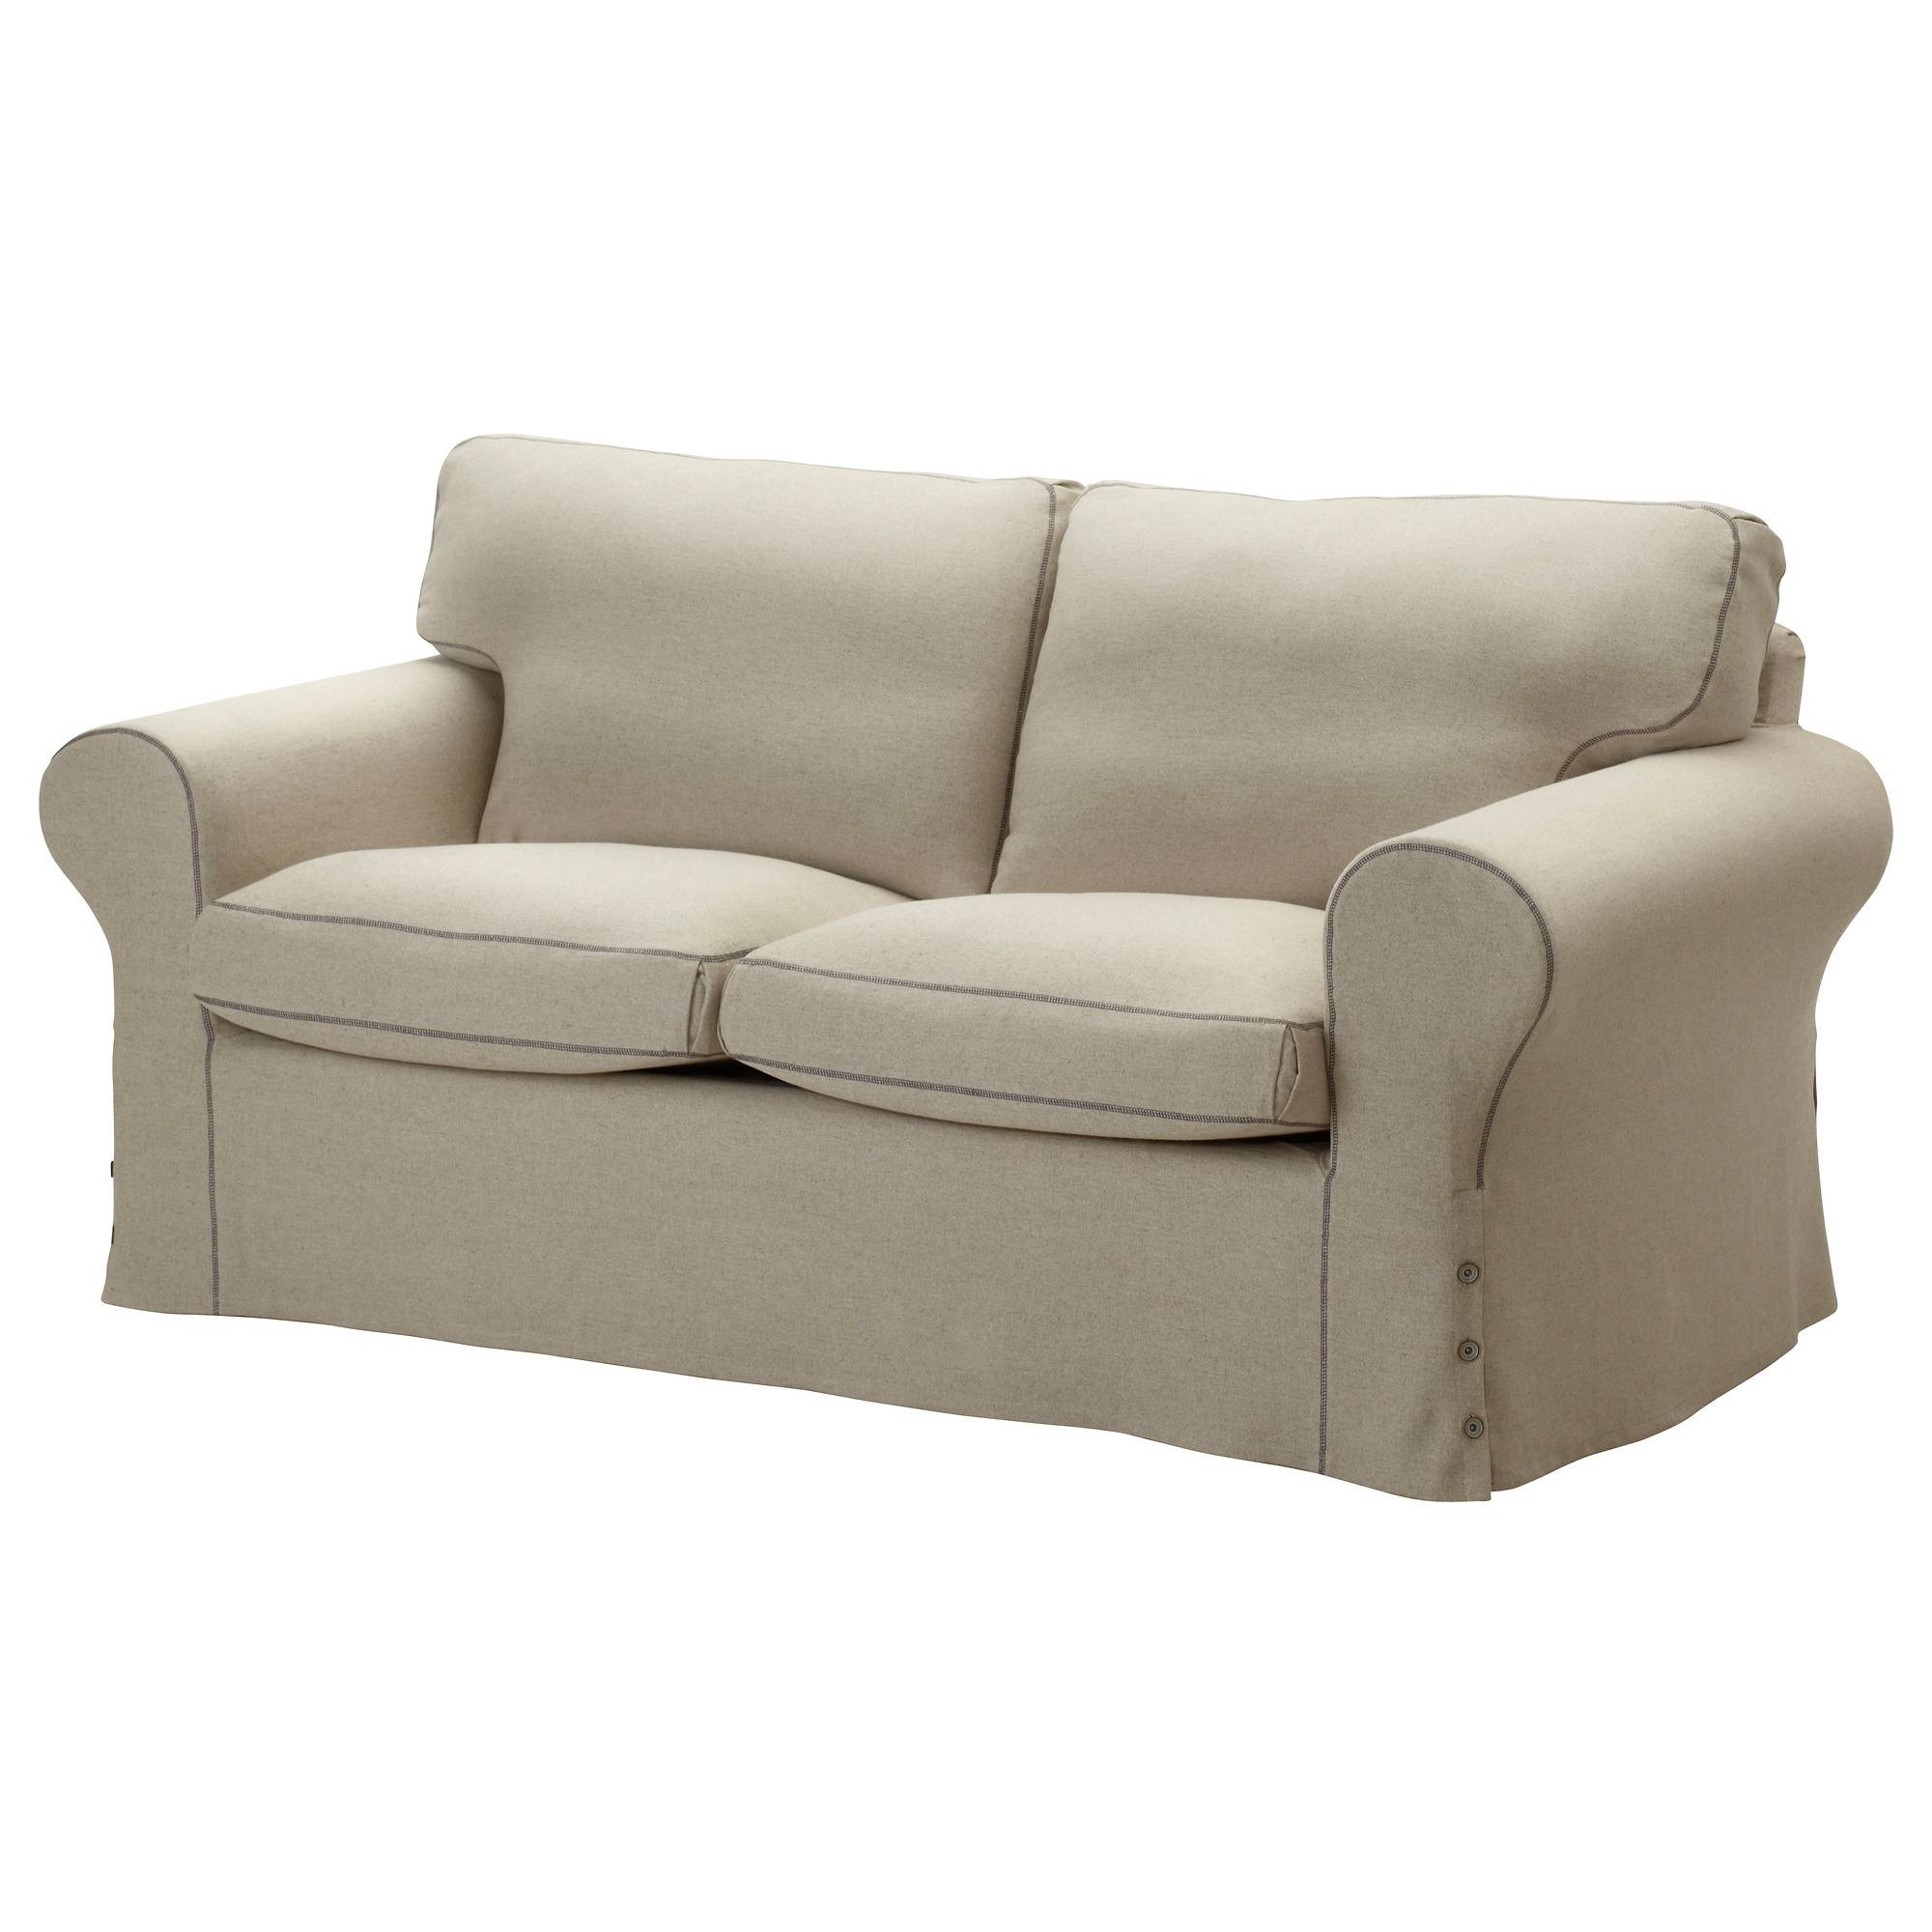 Gray Color Slipcovers For Loveseat With Two And T Cushions For throughout Loveseat Slipcovers T-Cushion (Image 10 of 15)